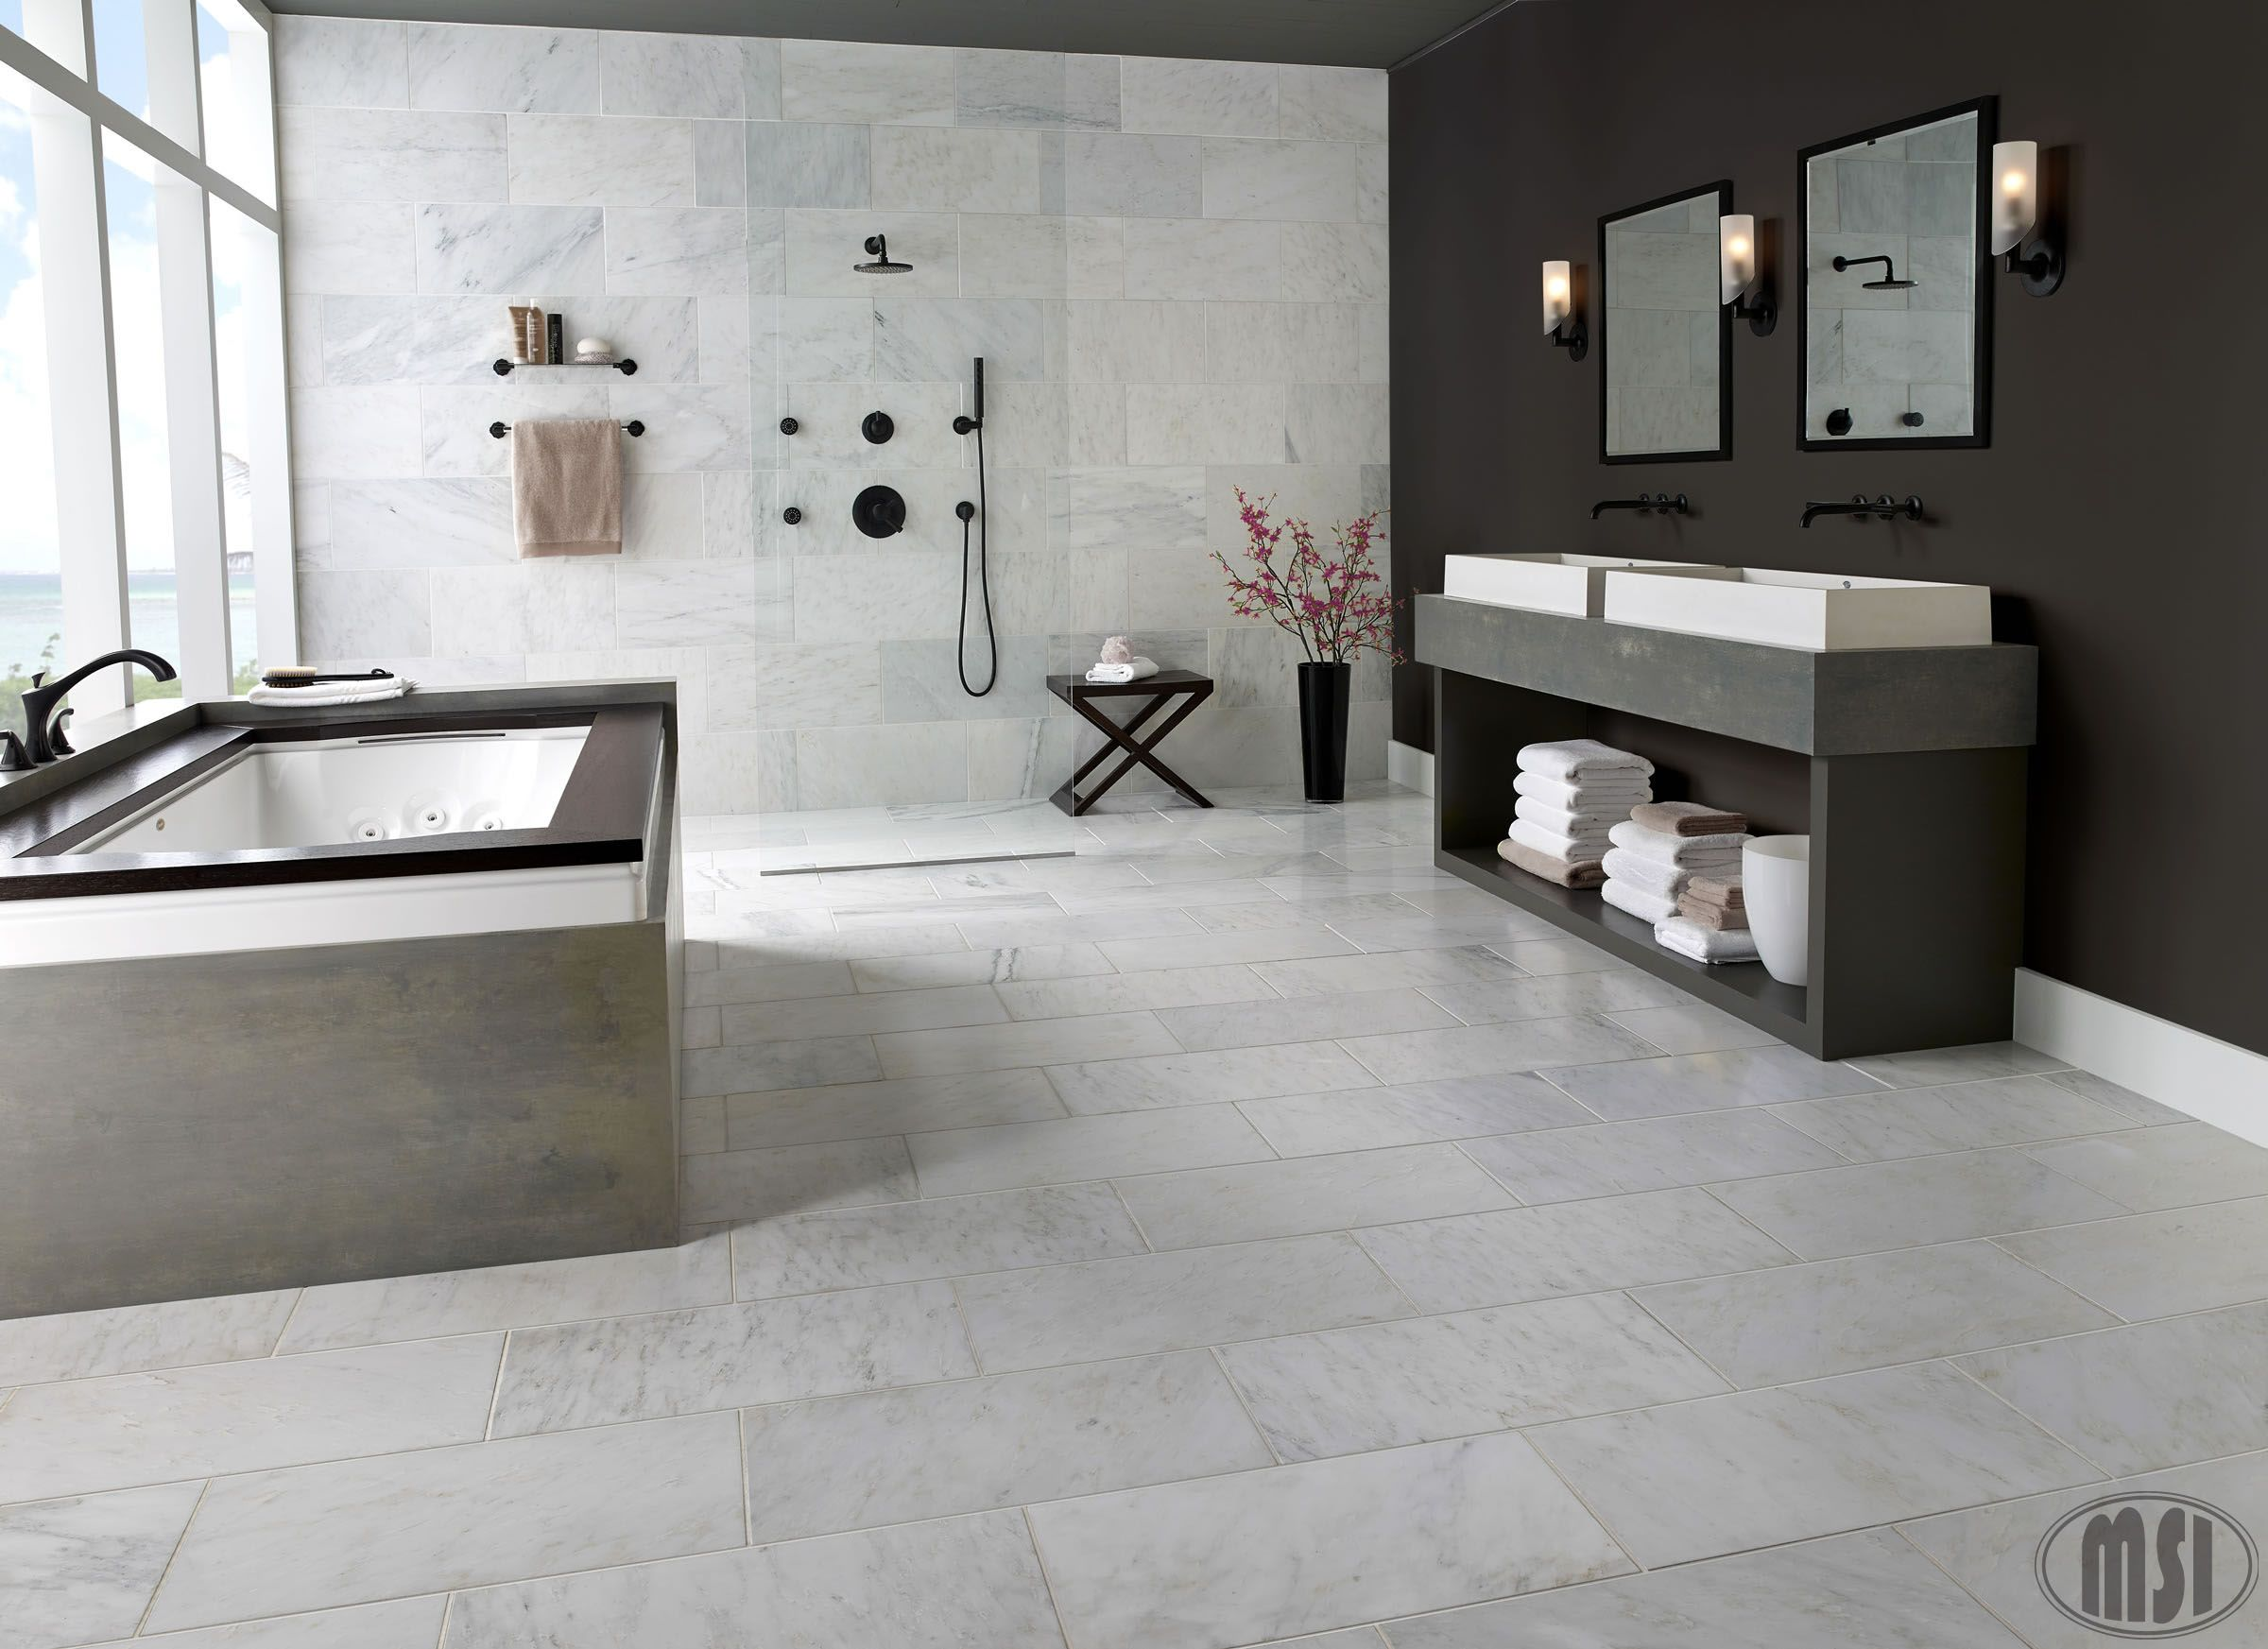 Dreamy White Marble Bathrooms Are The Best Modern Or Traditional Arabescato Carrara 12x24 Marble Tiles